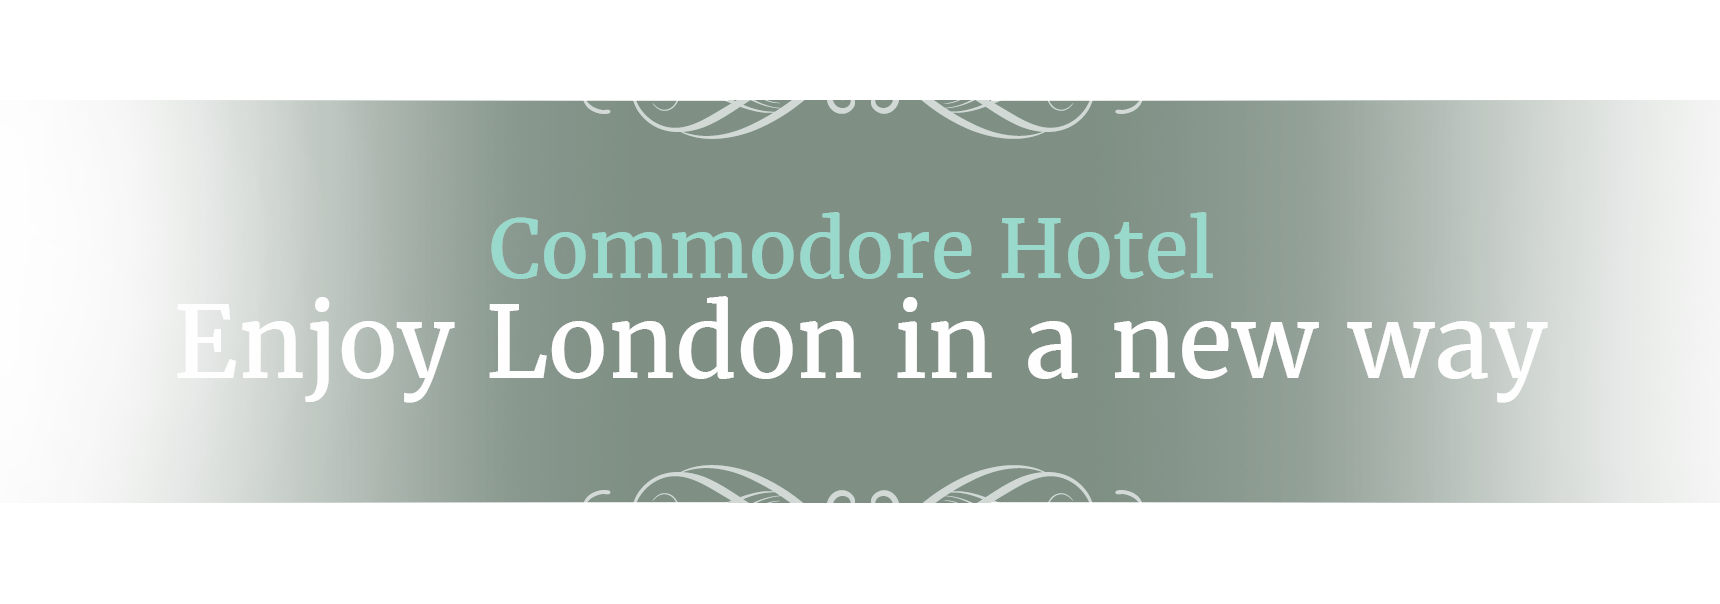 Home Commodore Hotel London